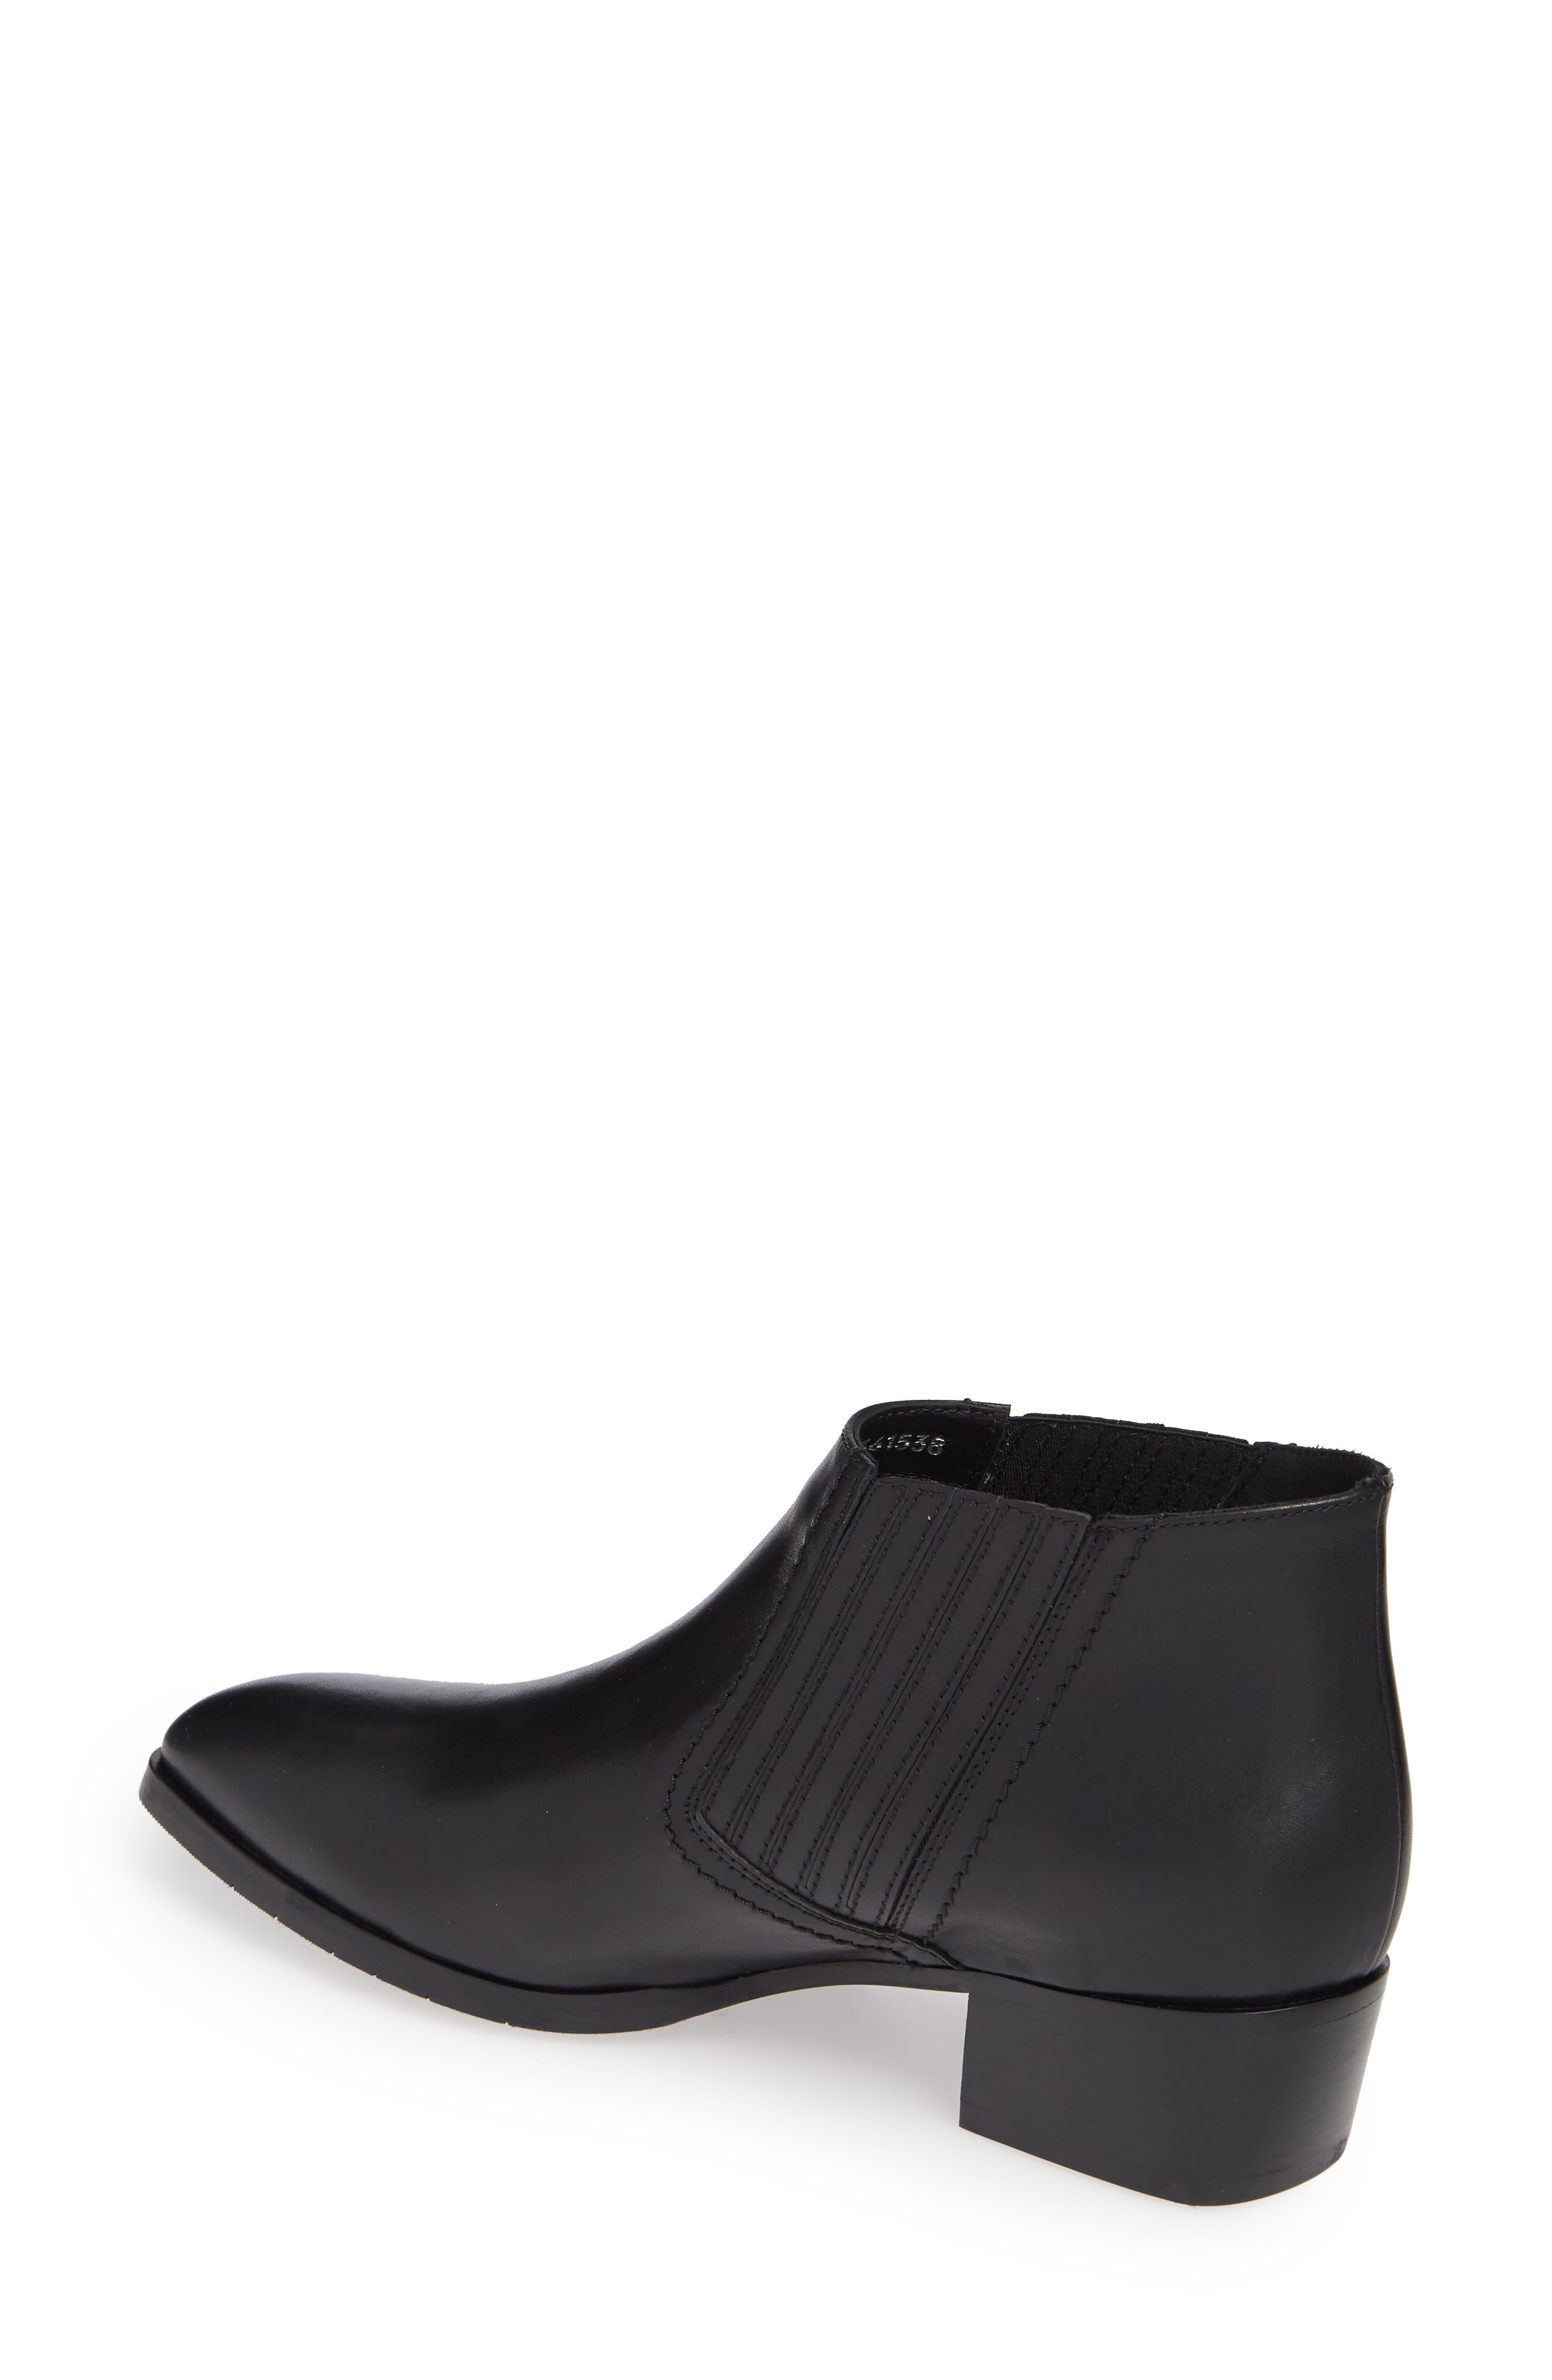 AQUATALIA,                             Fiore Studded Chelsea Bootie,                             Alternate thumbnail 2, color,                             BLACK LEATHER